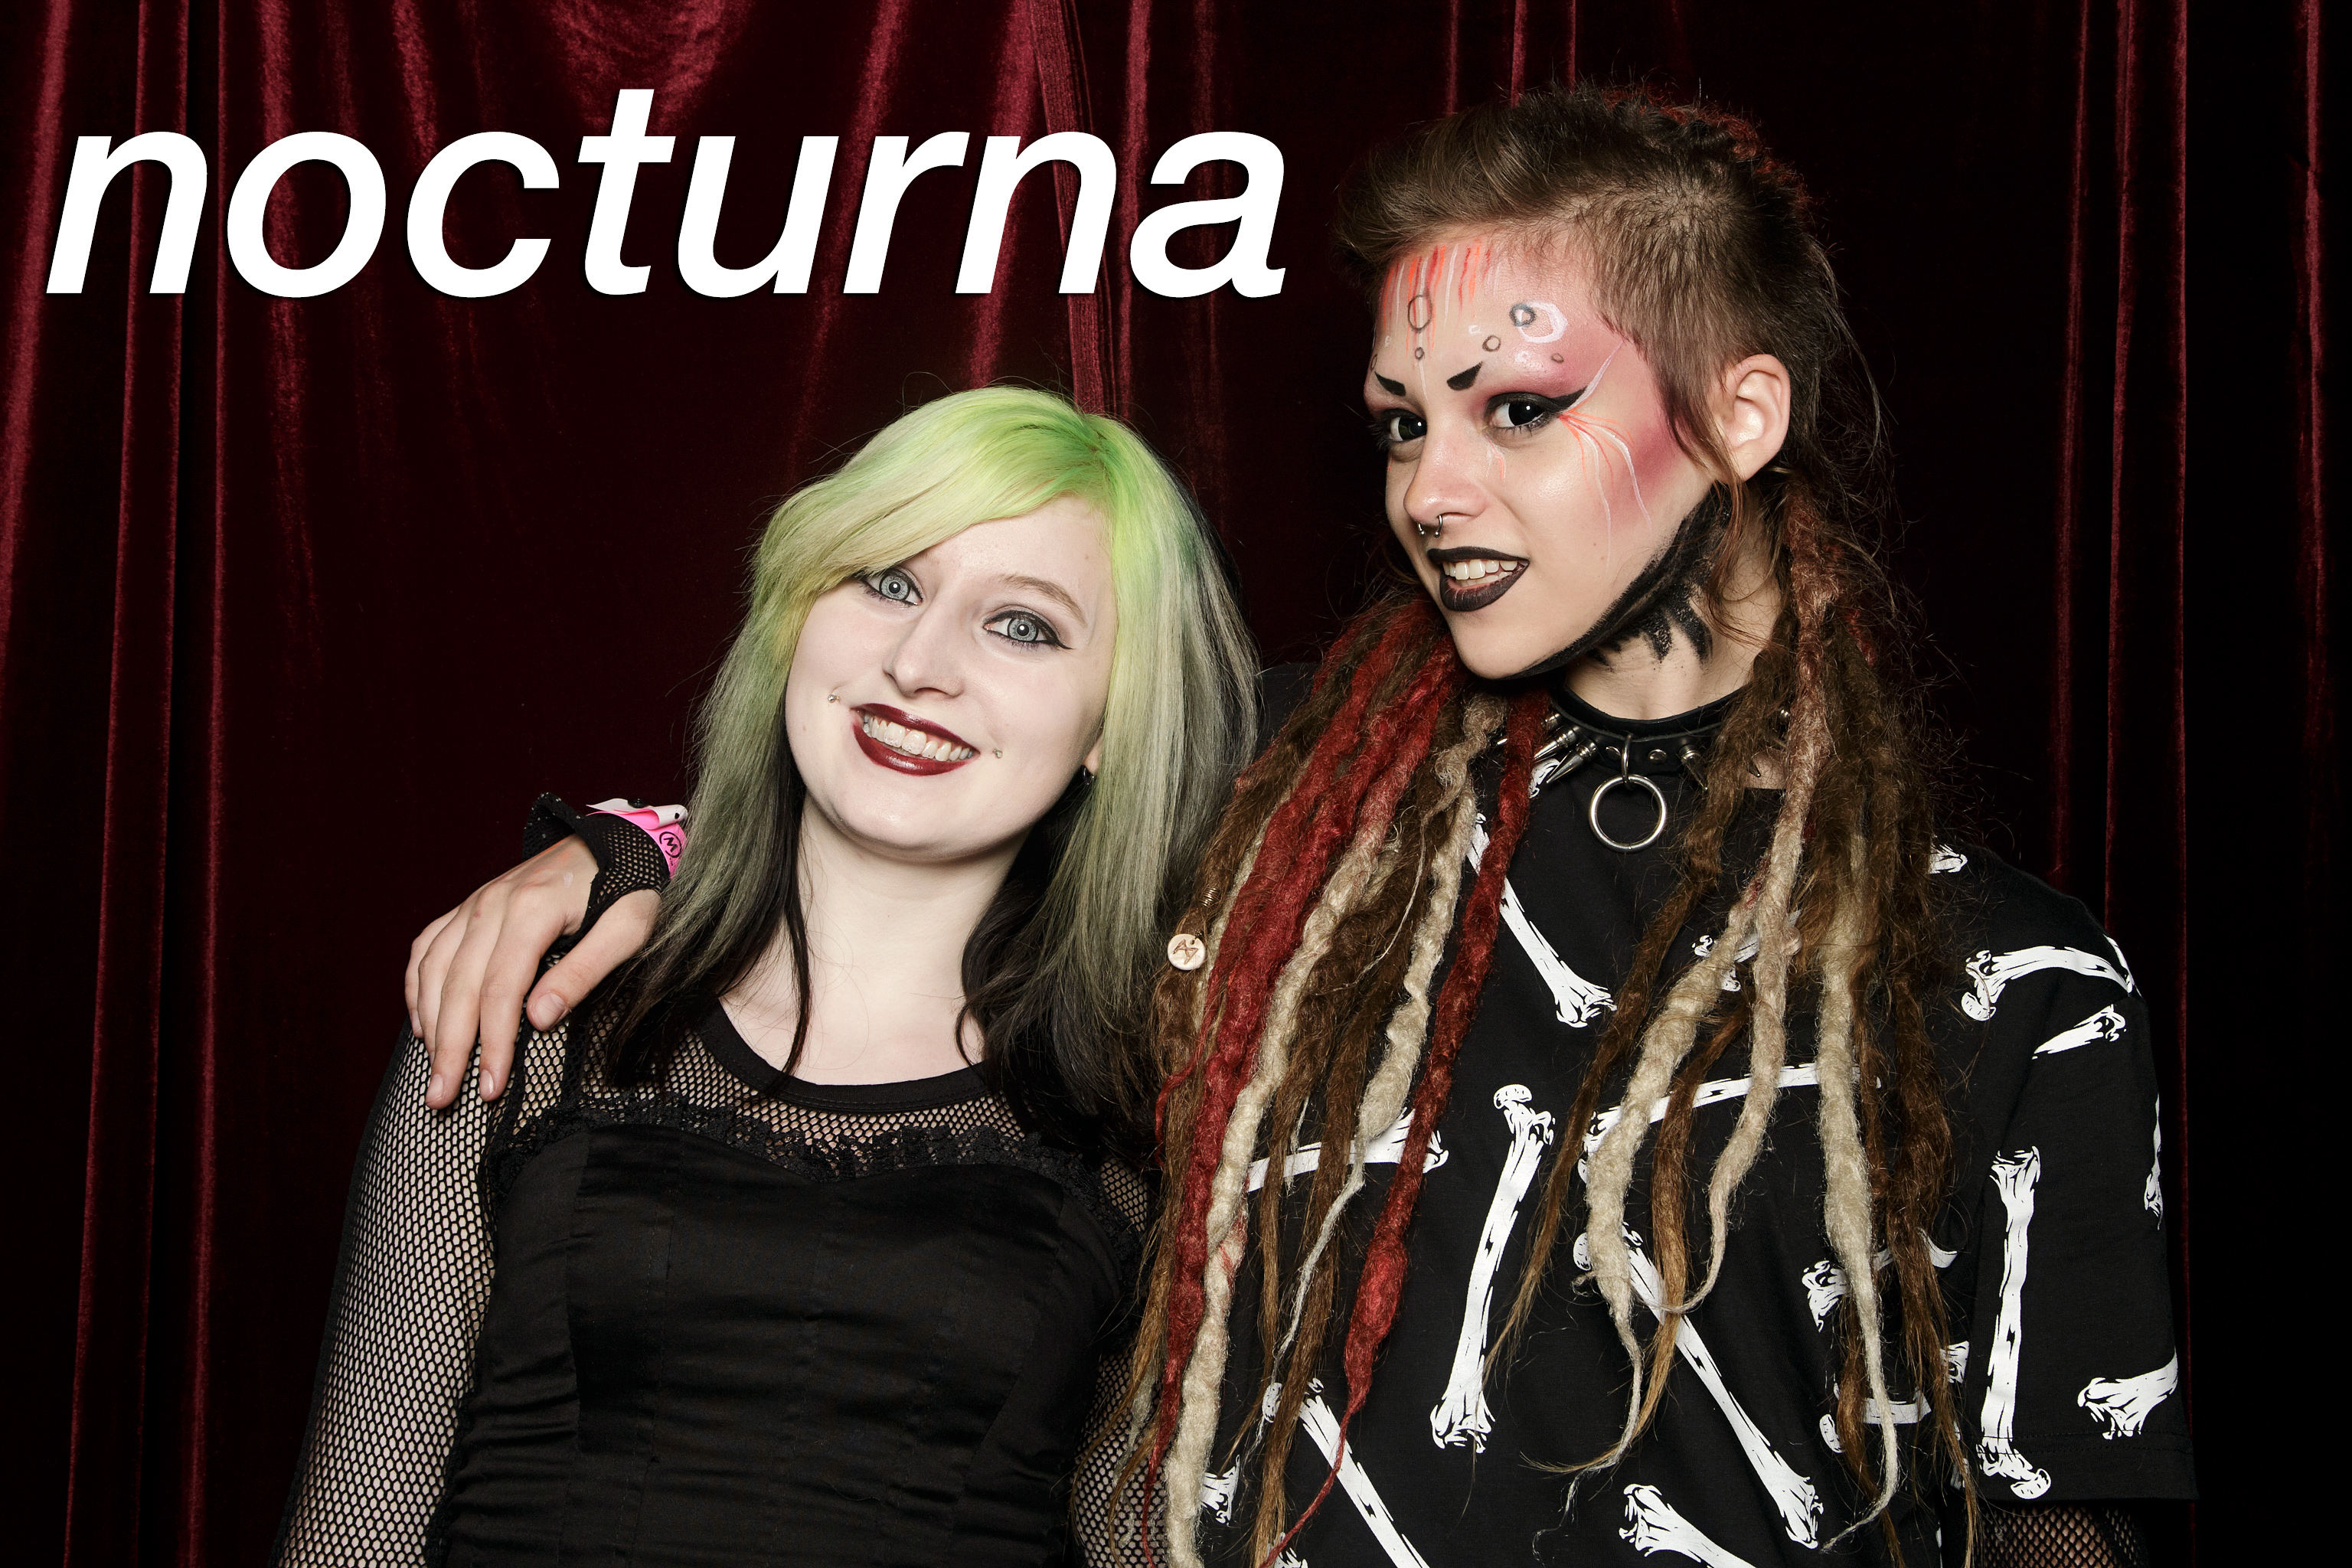 portrait booth photos from nocturna at the metro, june 2017